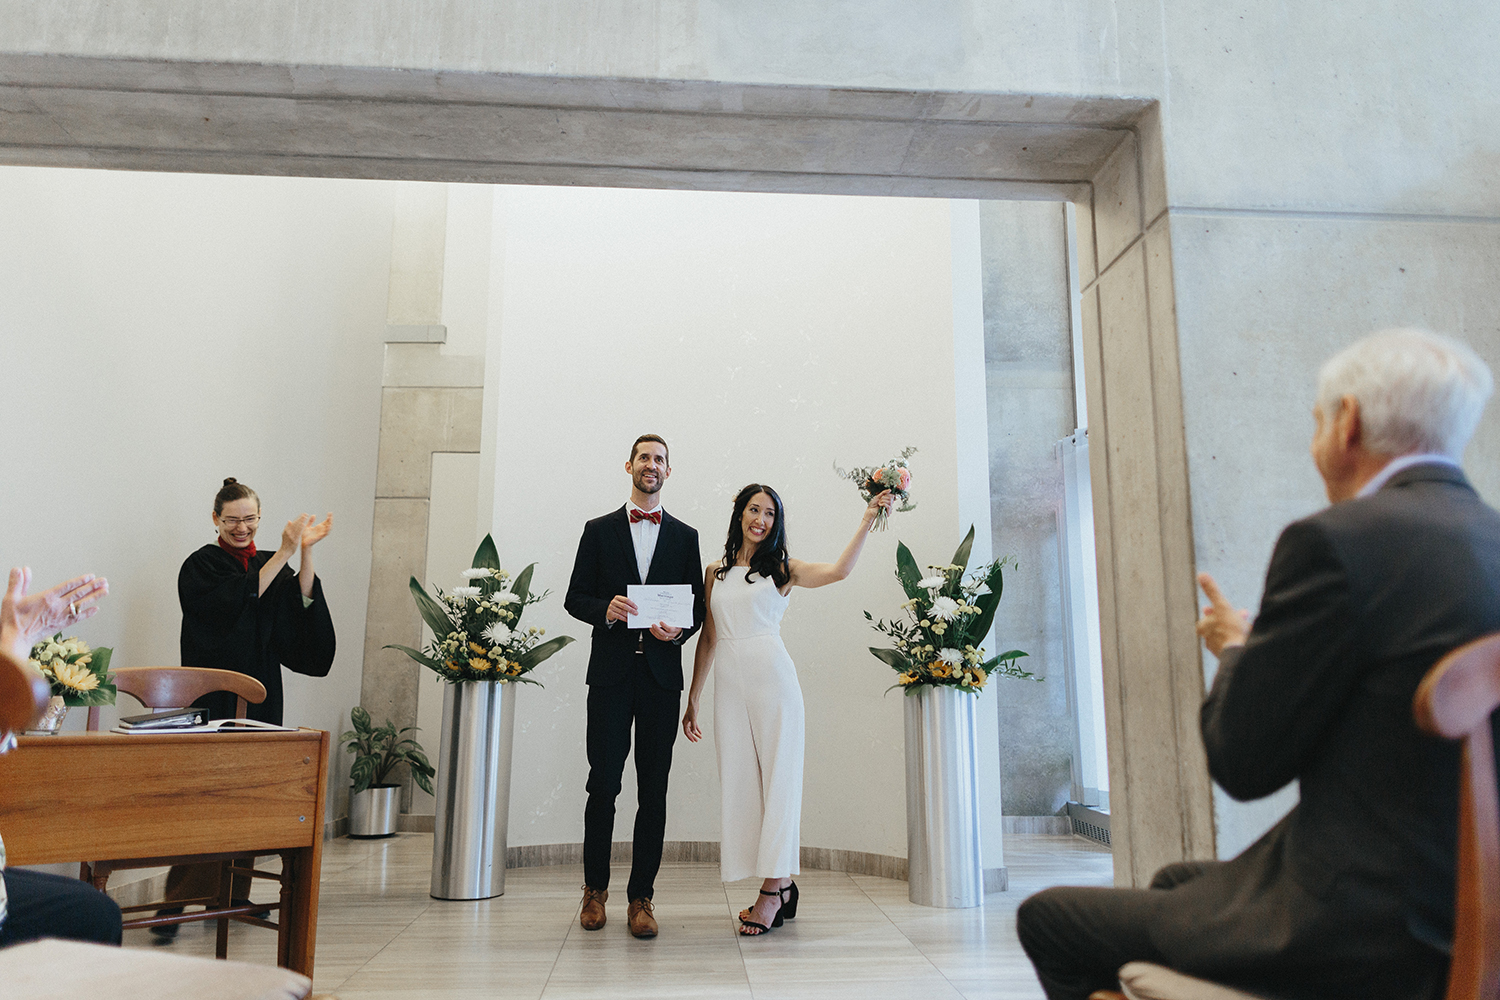 48-535-bBest-City-Hall-Elopement-Photography-Toronto-Ontario-Canada-Urban-Summer-Wedding-Vintage-Bride-and-Groom-Candid-Genuine-Moments-Documentary-Photojournalistic-Style-First-Kiss.jpg